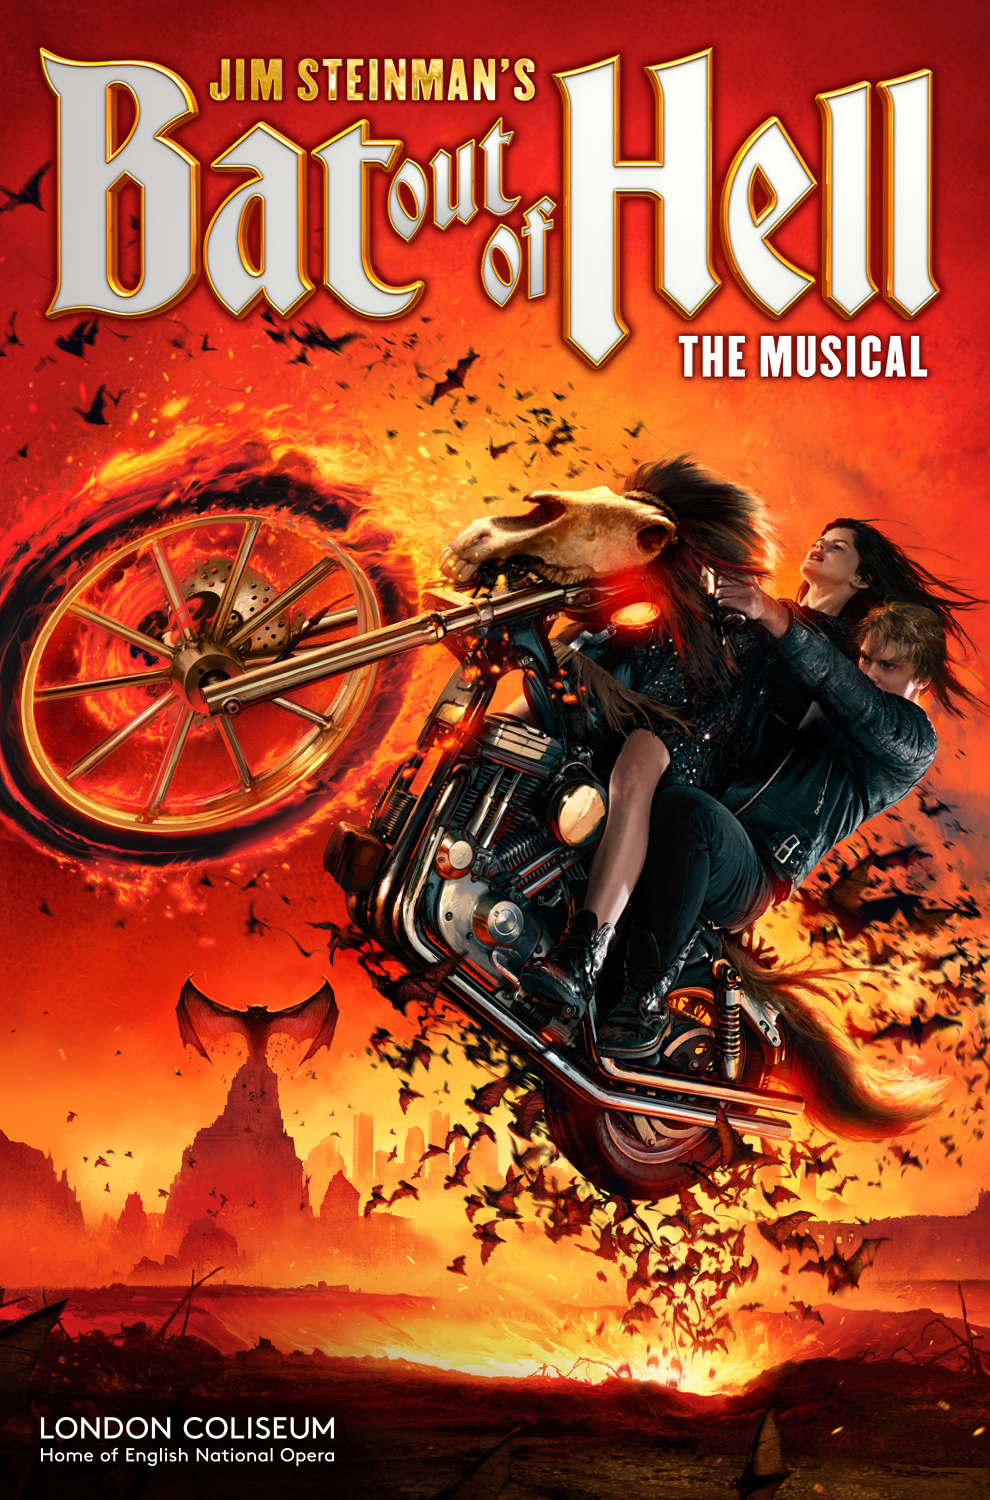 bat-out-of-hell-poster-7585-p.jpg